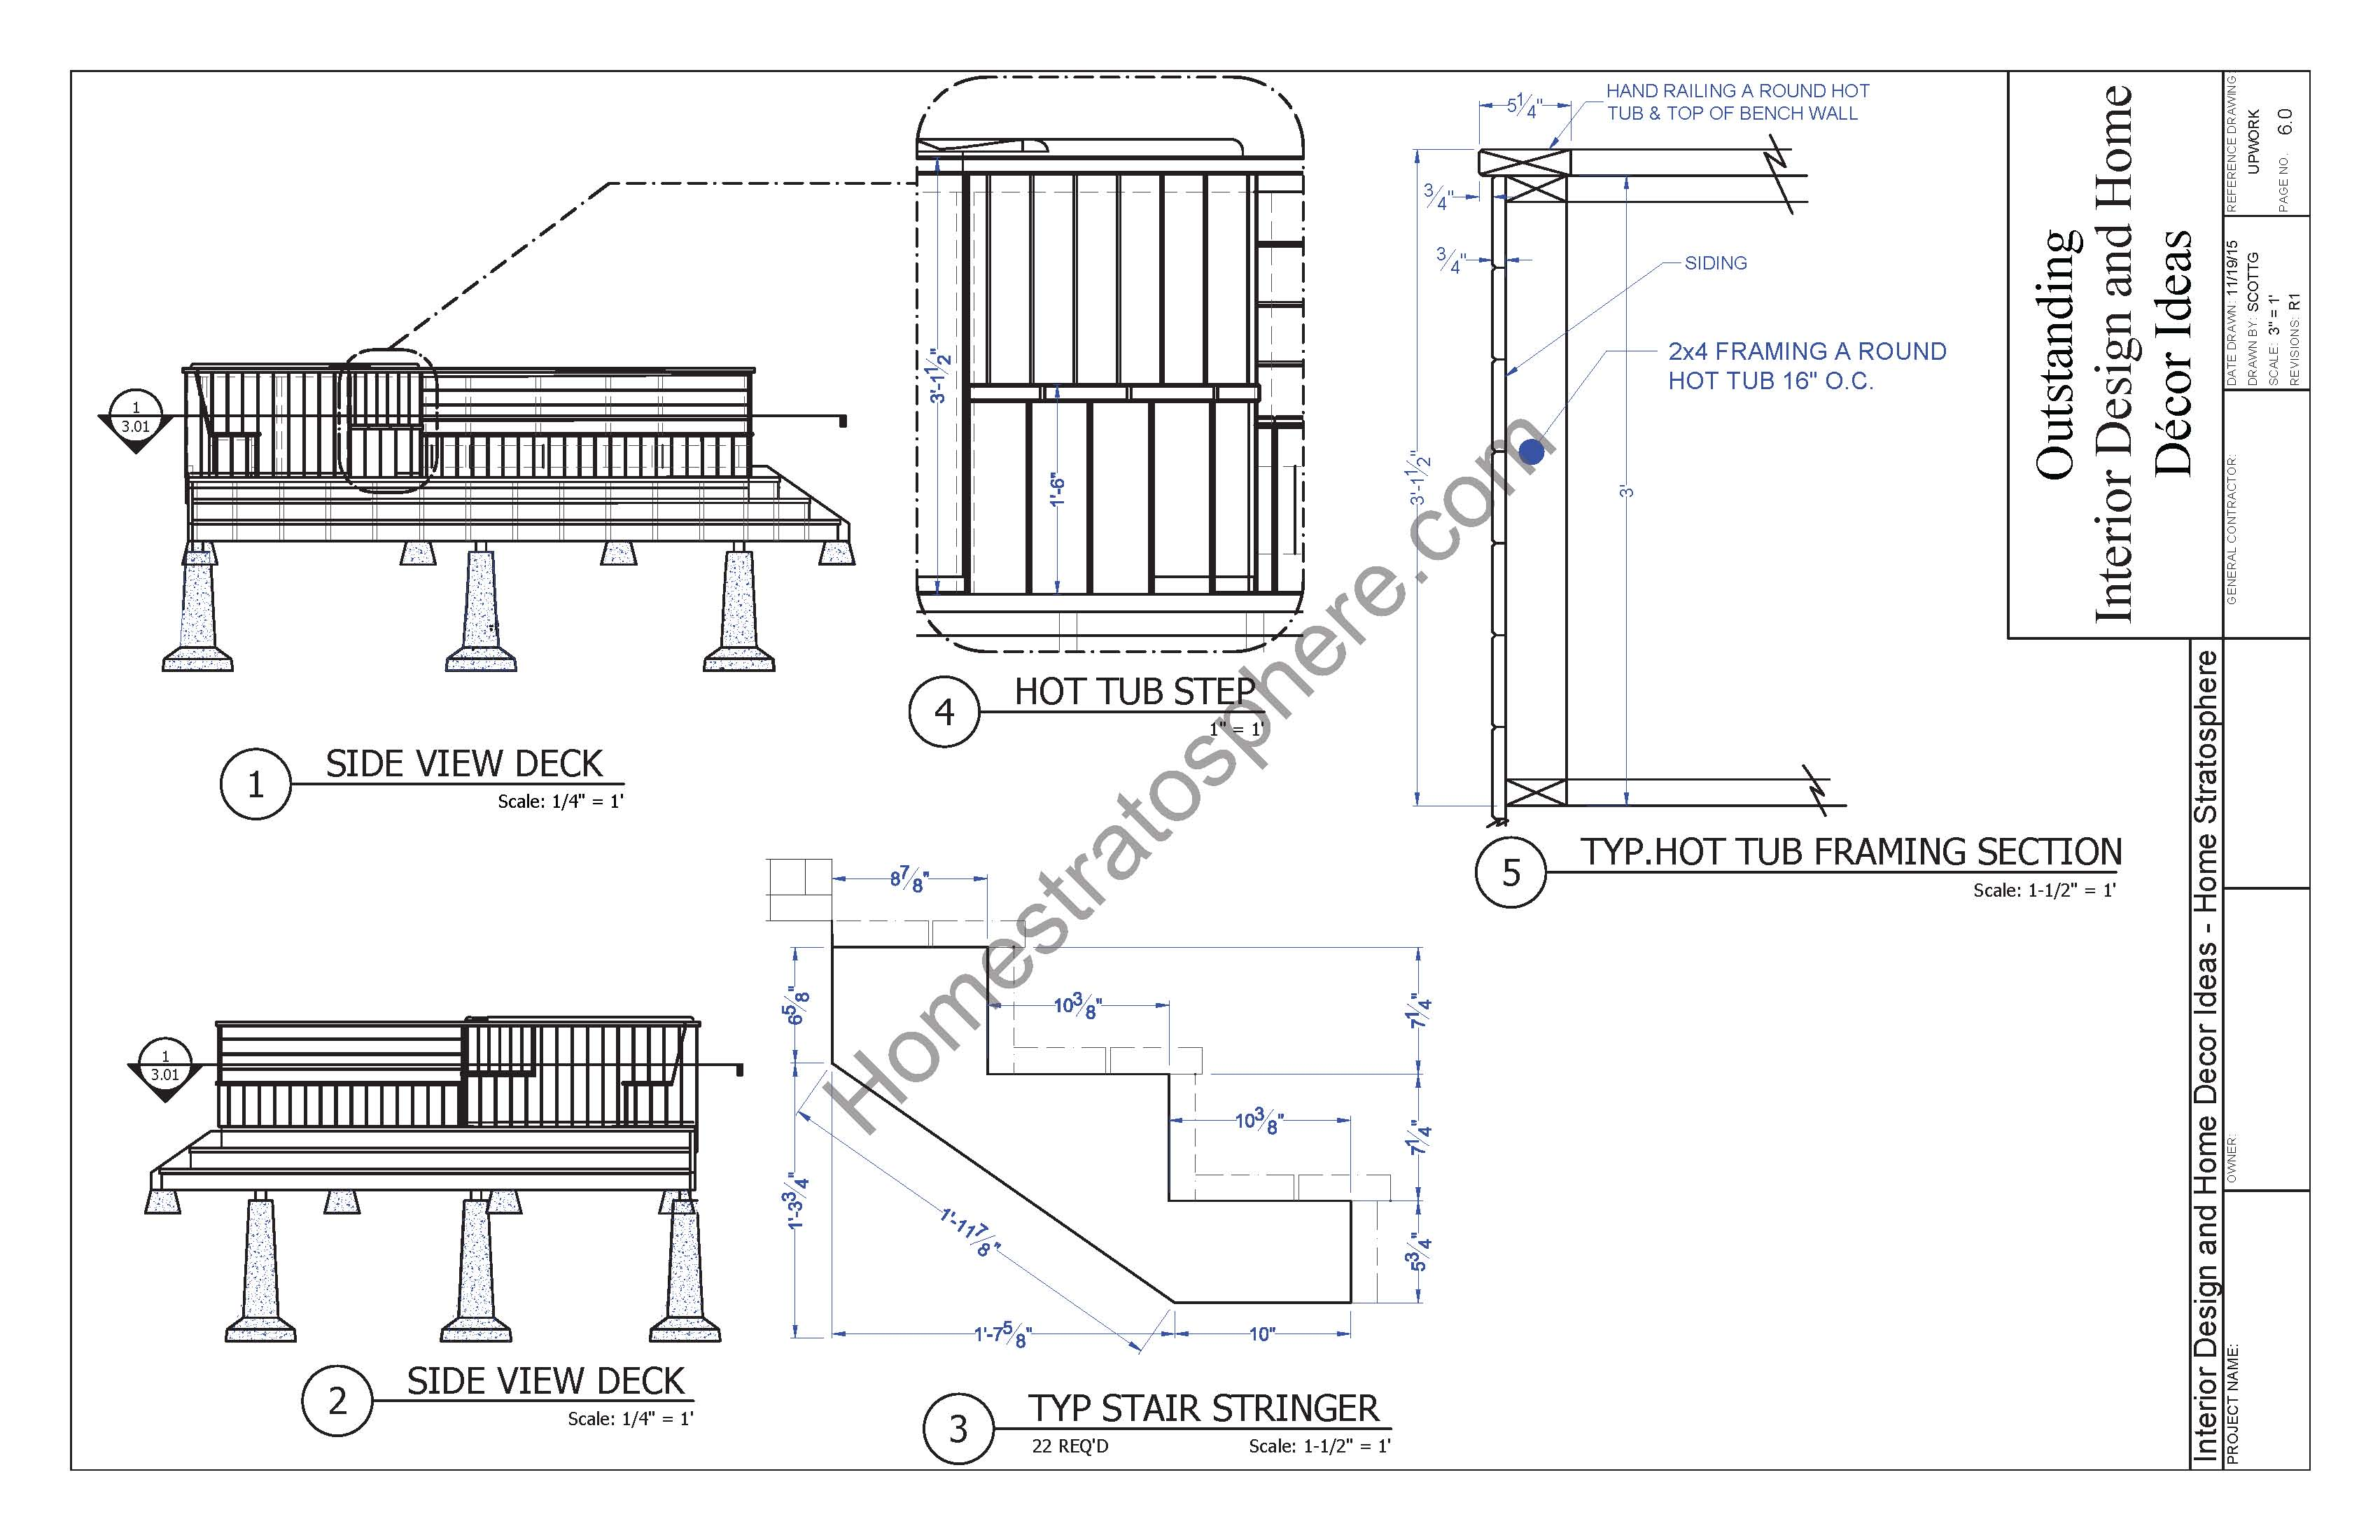 Hot tub deck design plan free pdf download for Hot tub deck designs plans